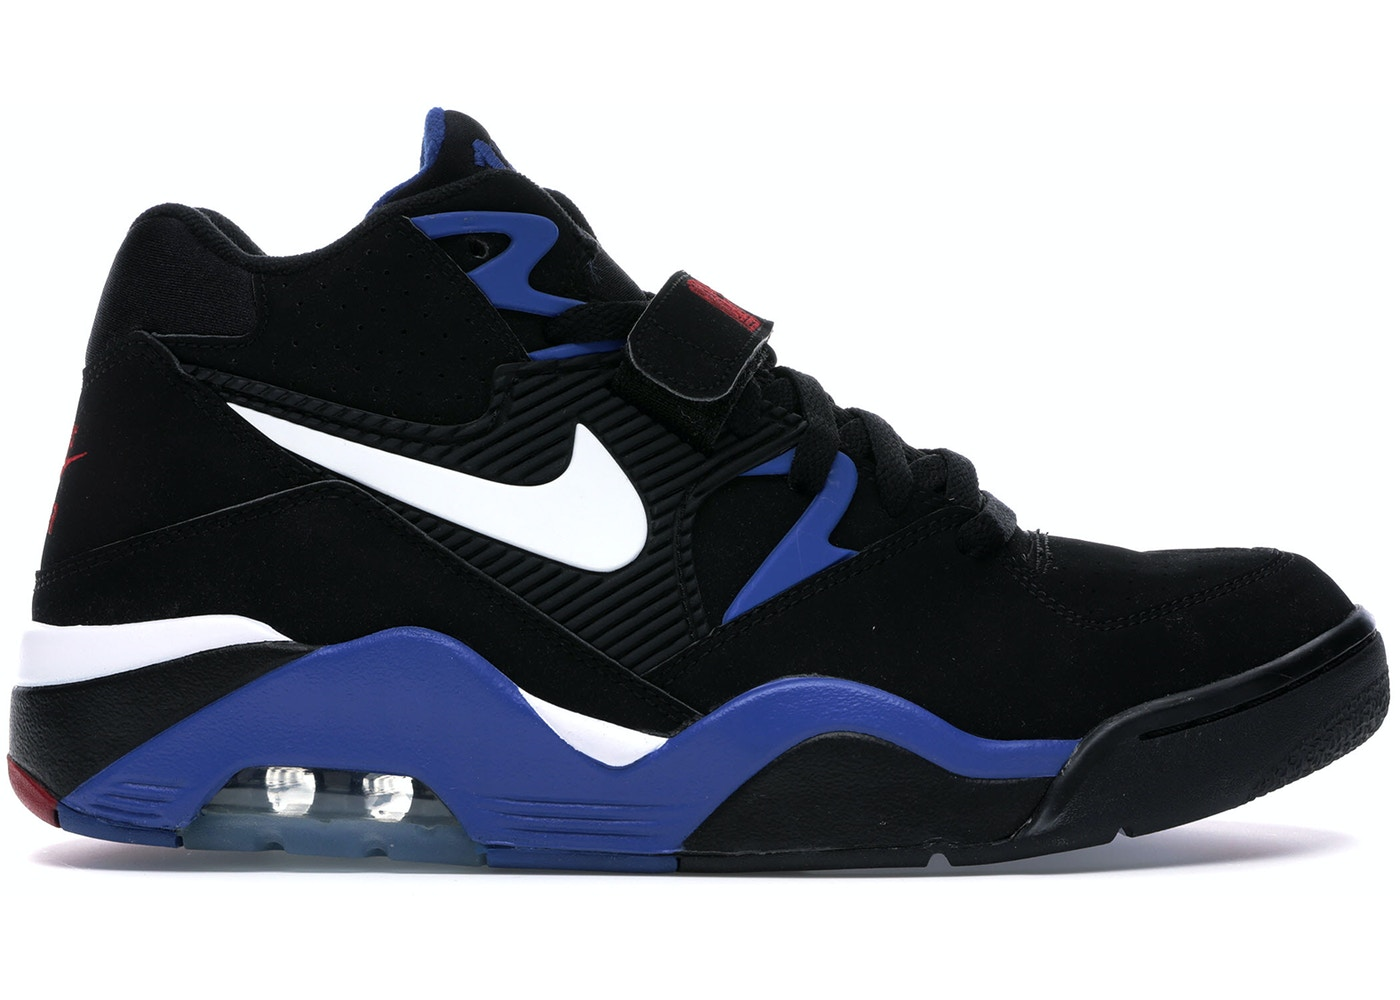 Flecha regular Dedos de los pies  Nike Air Force 180 Barkley OG (2016) - 310095-011